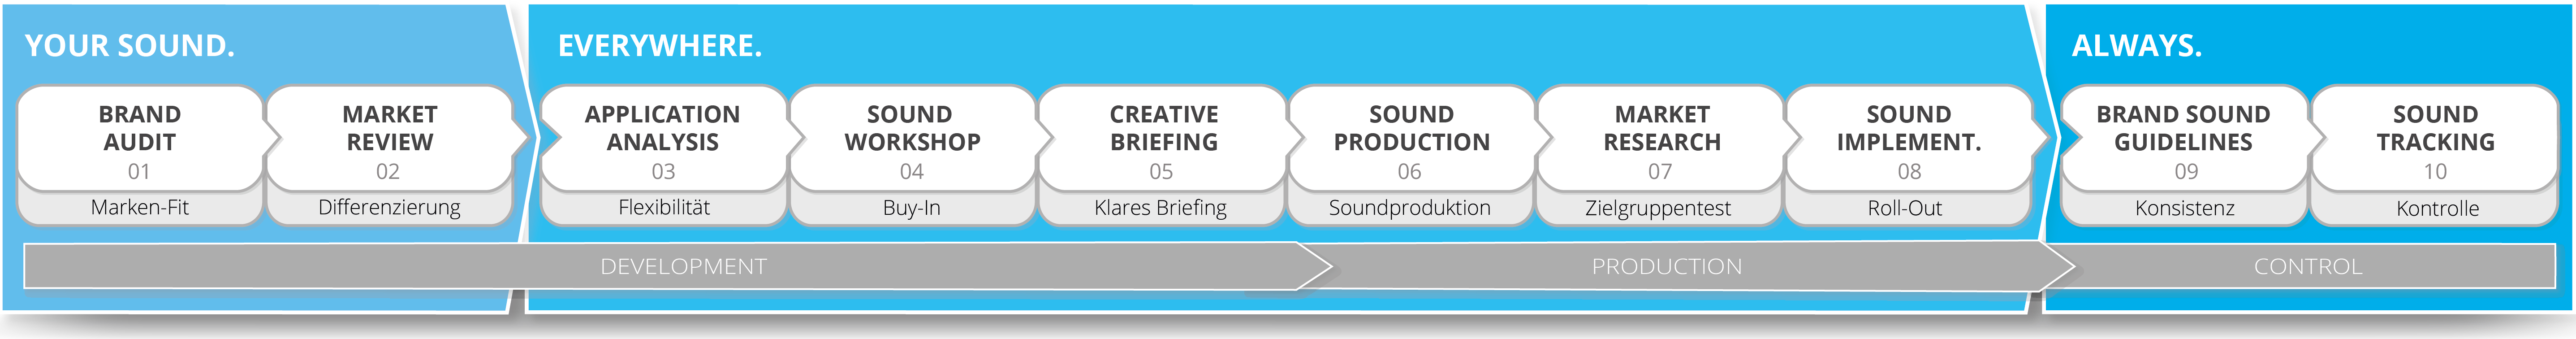 Das GROVES Sound Branding System  <br> Your Sound. Everywhere. Always.